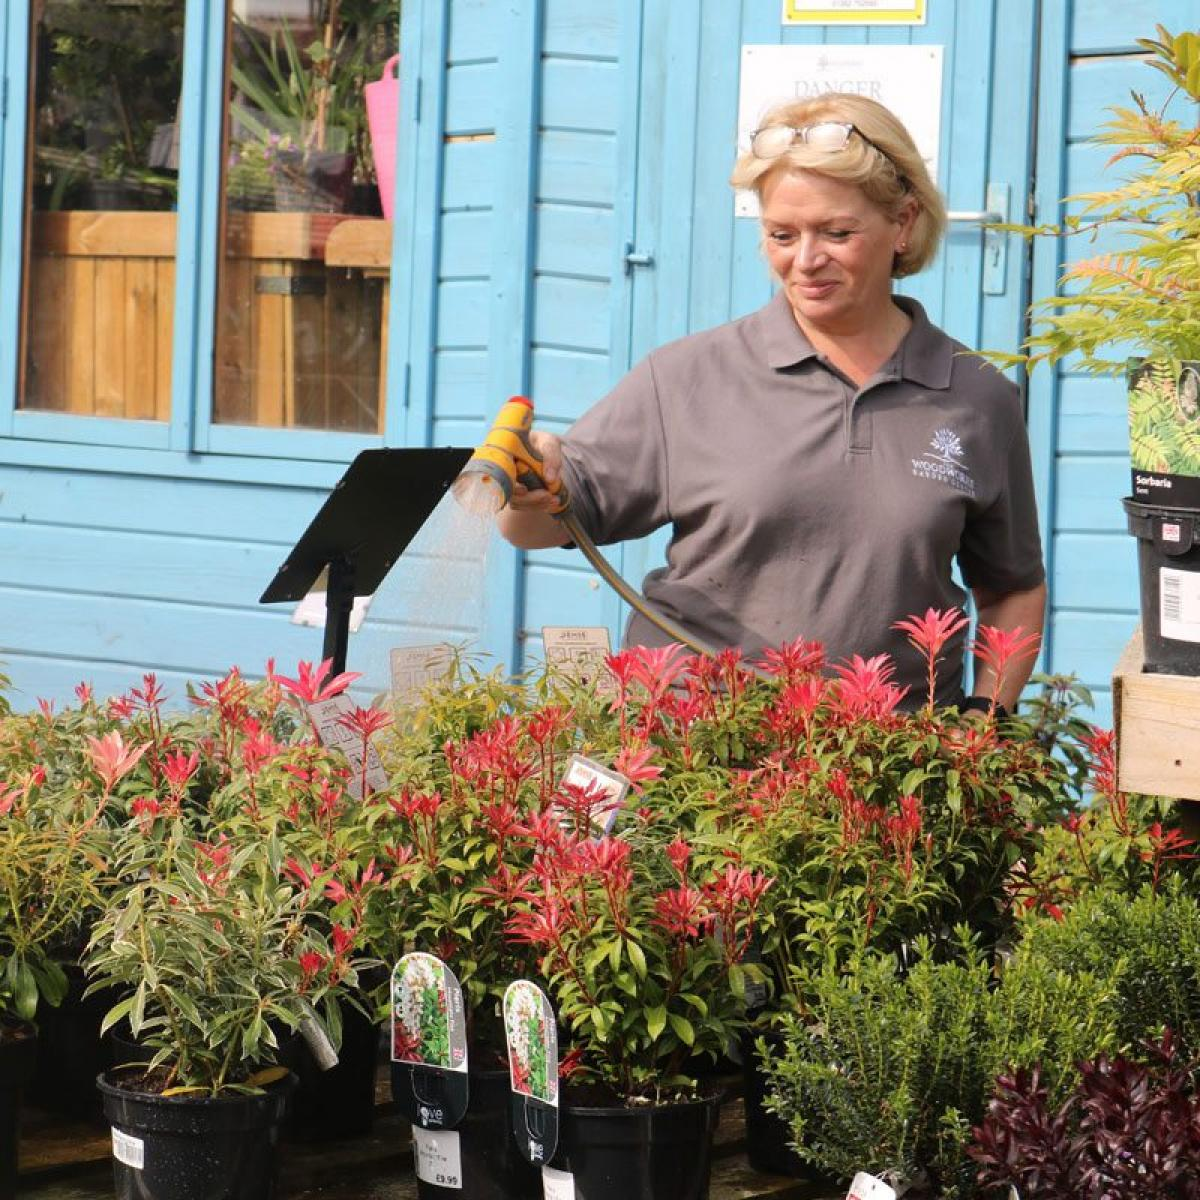 Images from The Woodworks Garden Centre